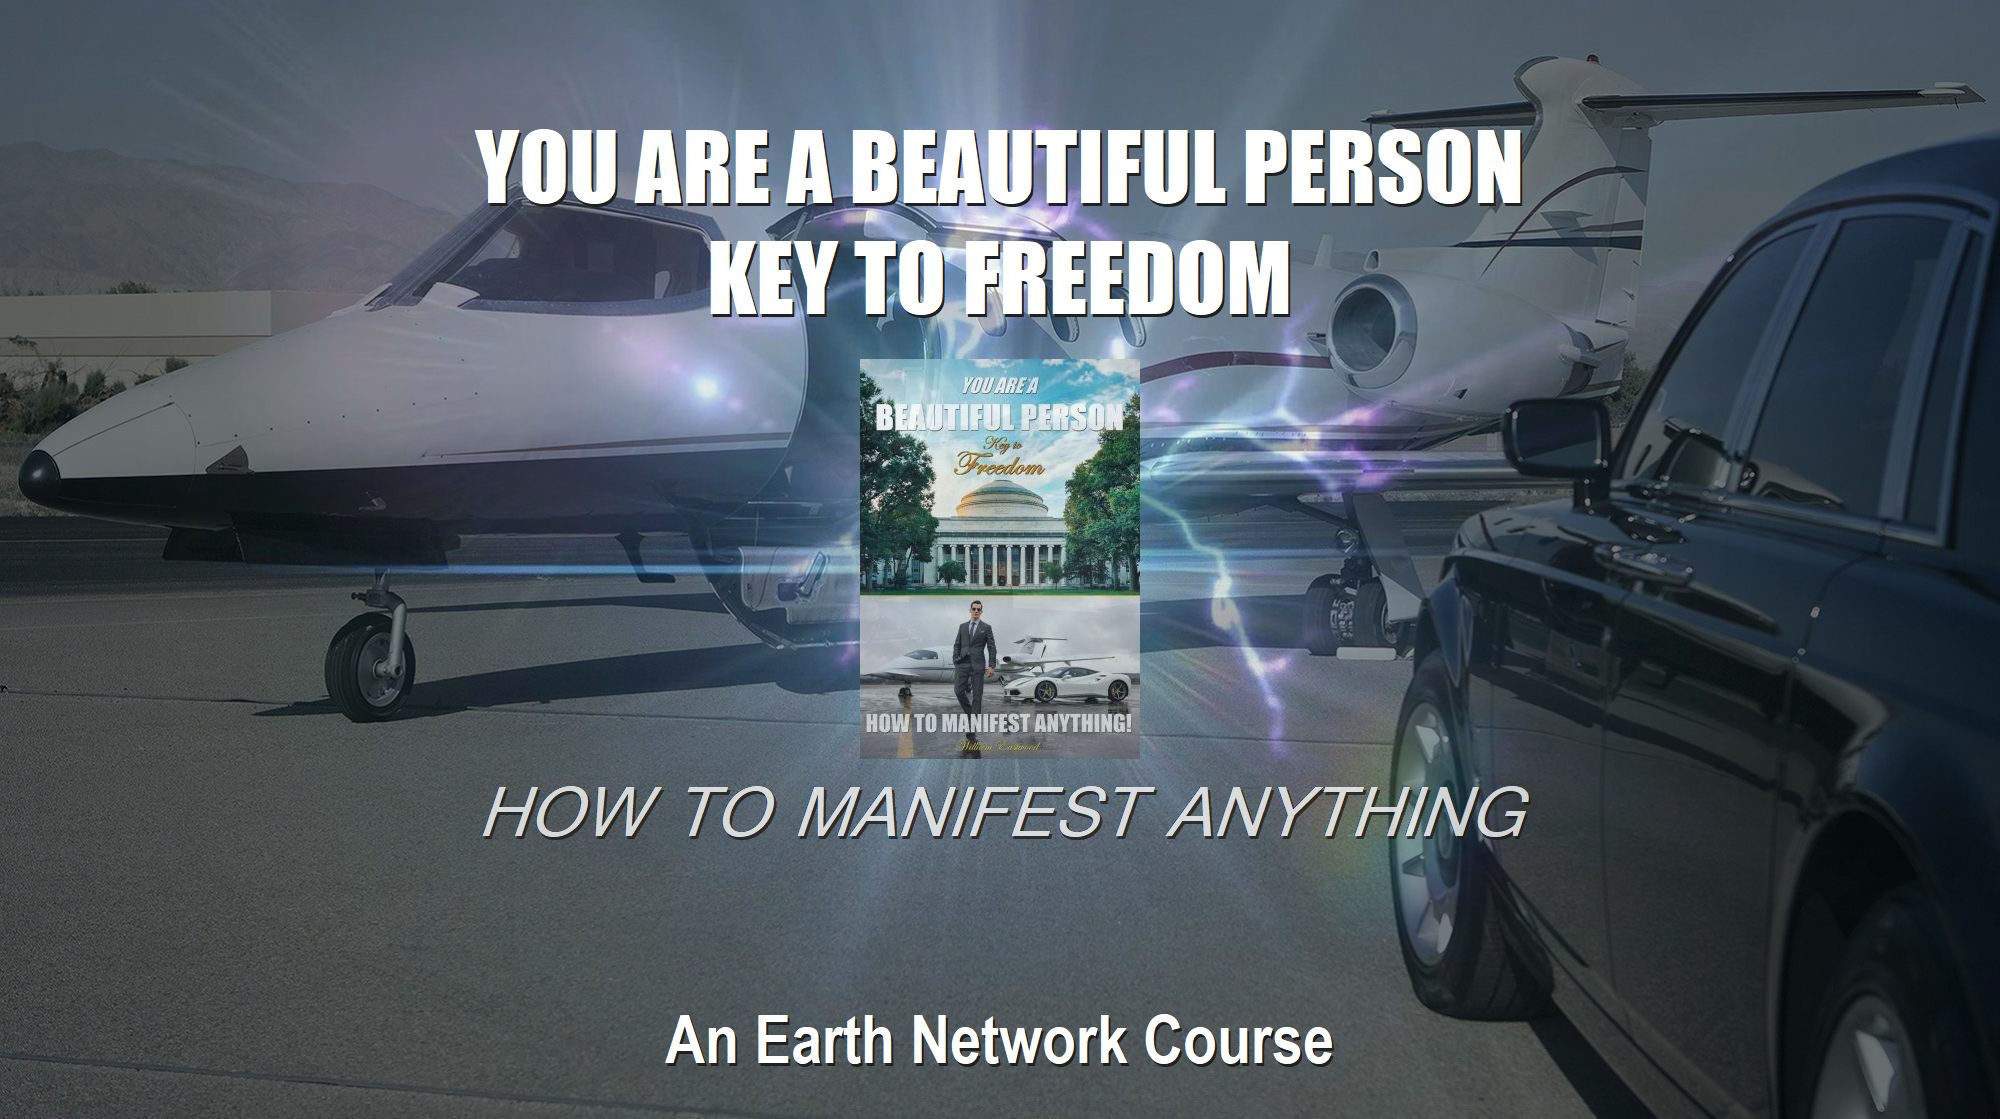 mind-over-matter-power-manifesting-feature-image-jet